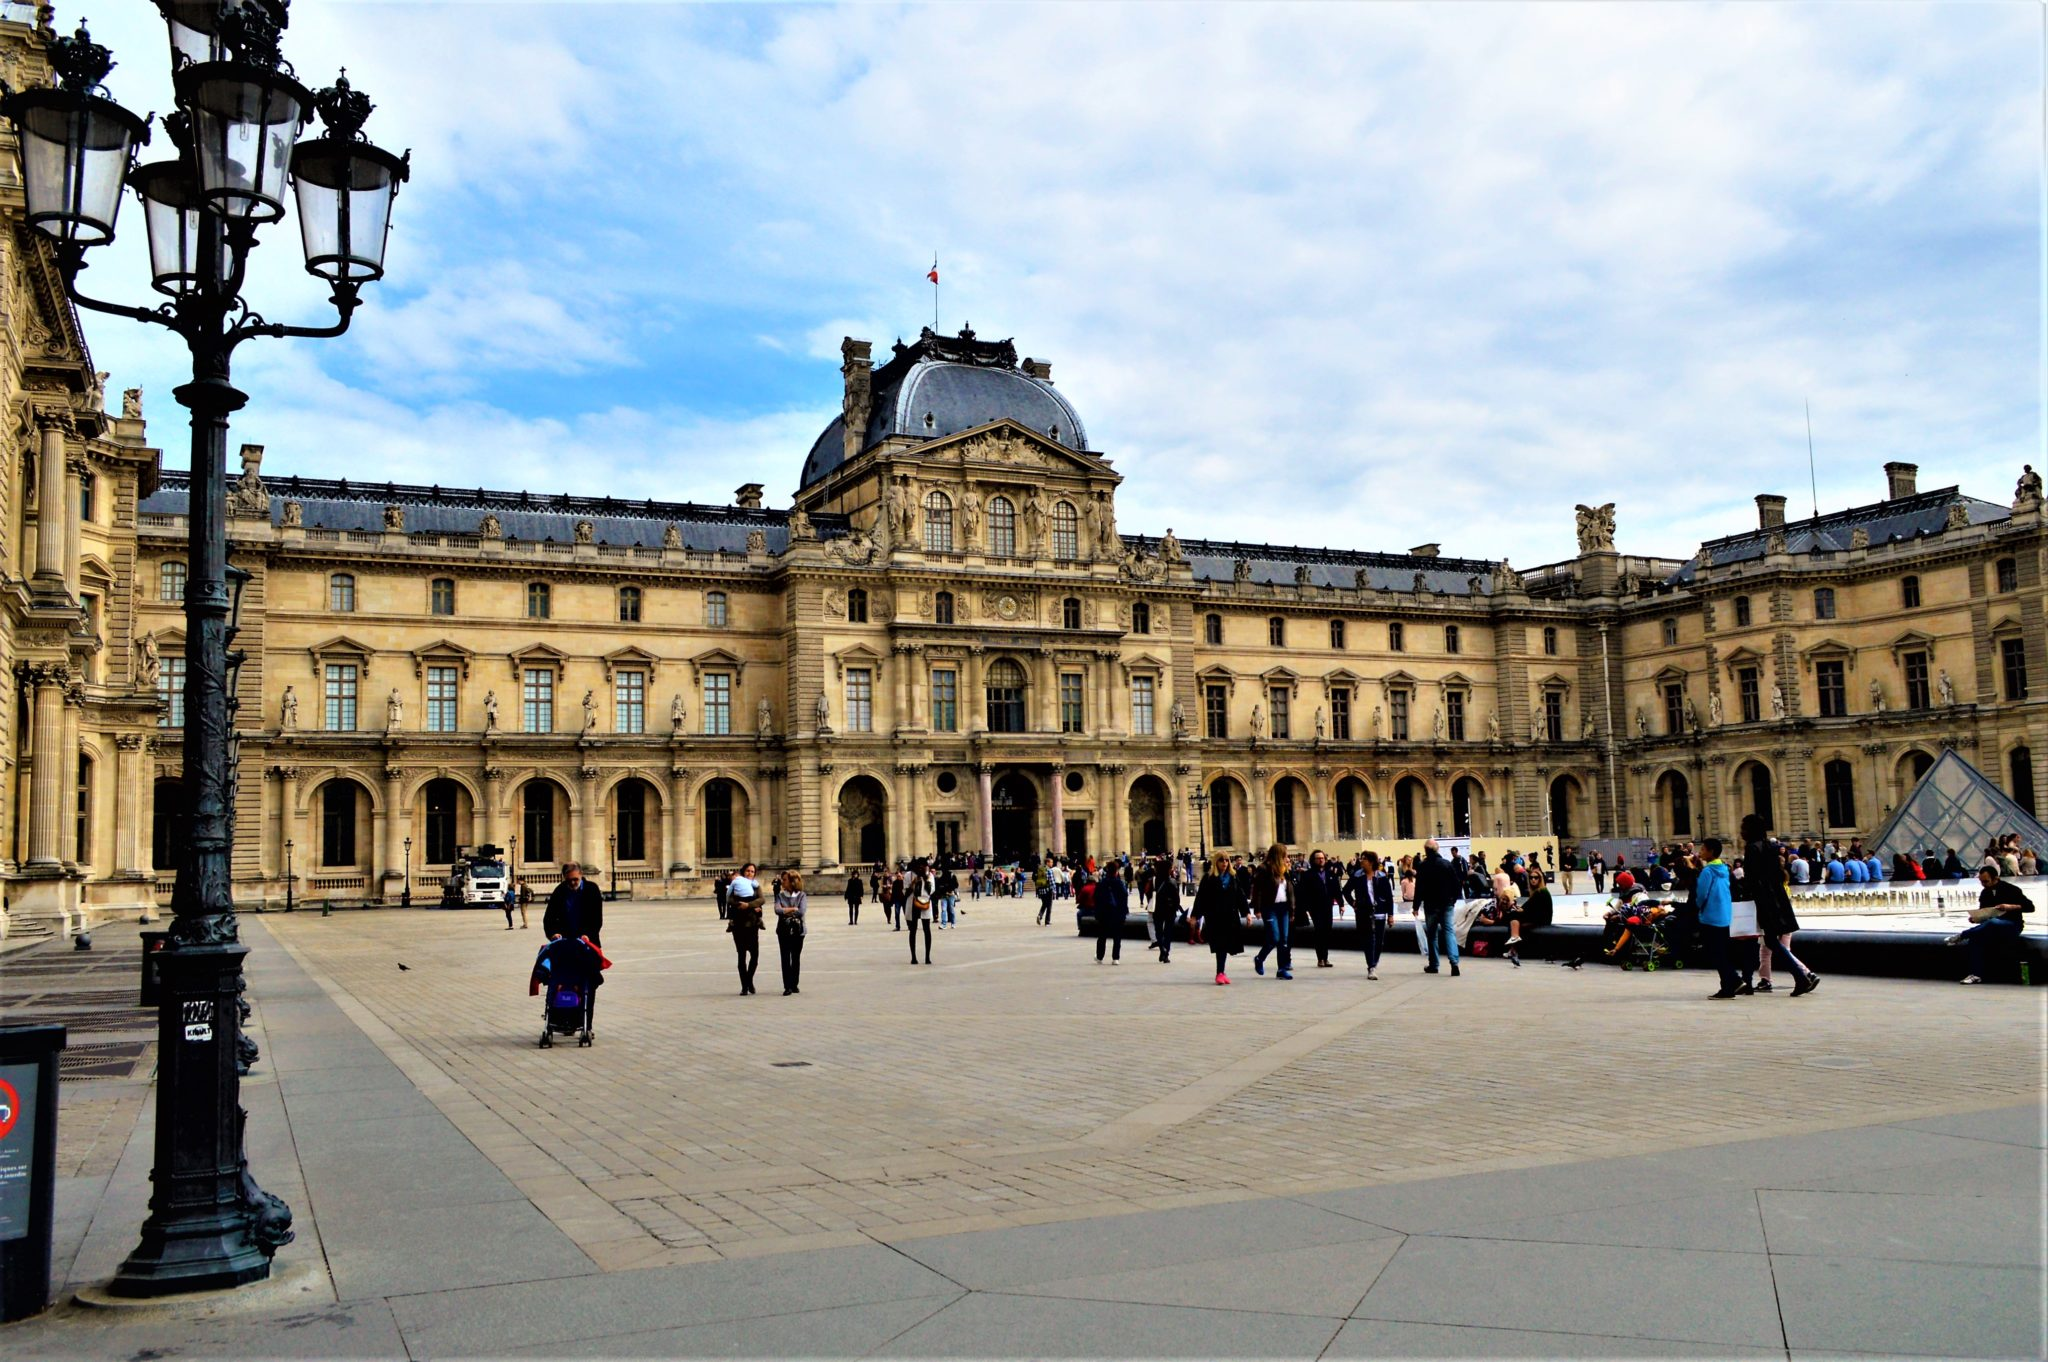 Grounds of the Louvre, Paris, France